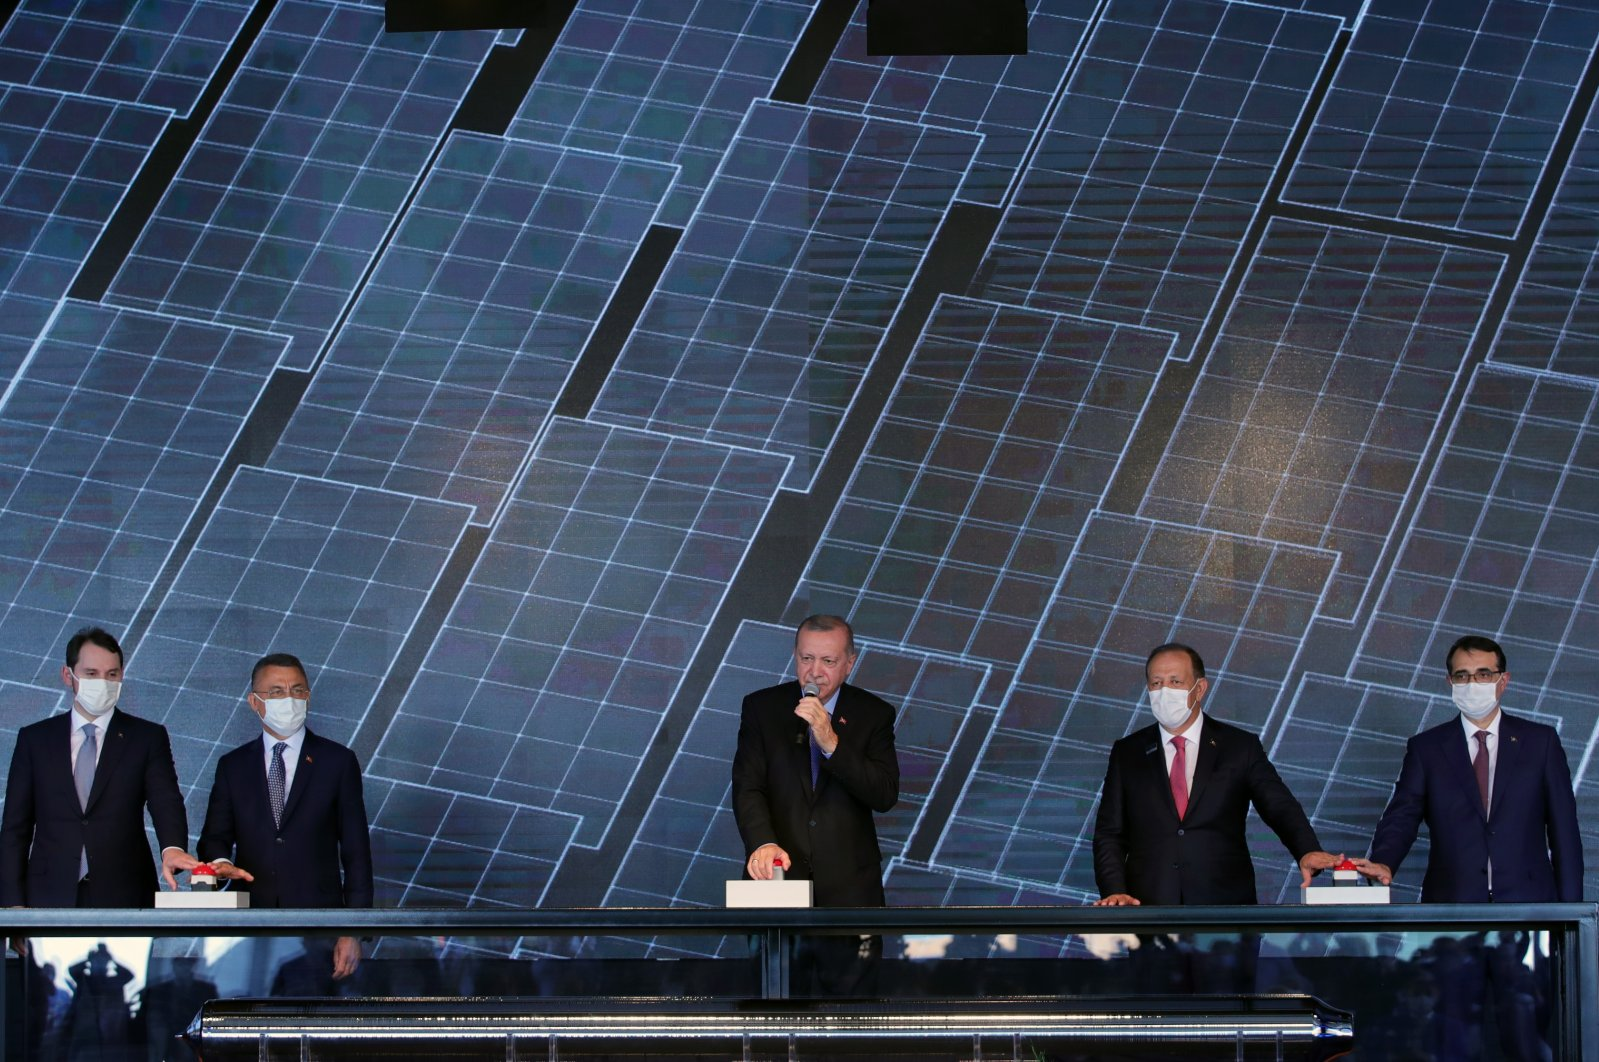 Treasury and Finance Minister Berat Albayrak (L), Vice President Fuat Oktay (2nd from L), President Recep Tayyip Erdoğan (C), Kalyon Holding chairman Cemal Kalyoncu (2nd from R) and Energy and Natural Resources Minister Fatih Dönmez (R) attend the opening ceremony of the first integrated solar panel manufacturing facility, Ankara, Turkey, Aug. 19, 2020. (AA Photo)